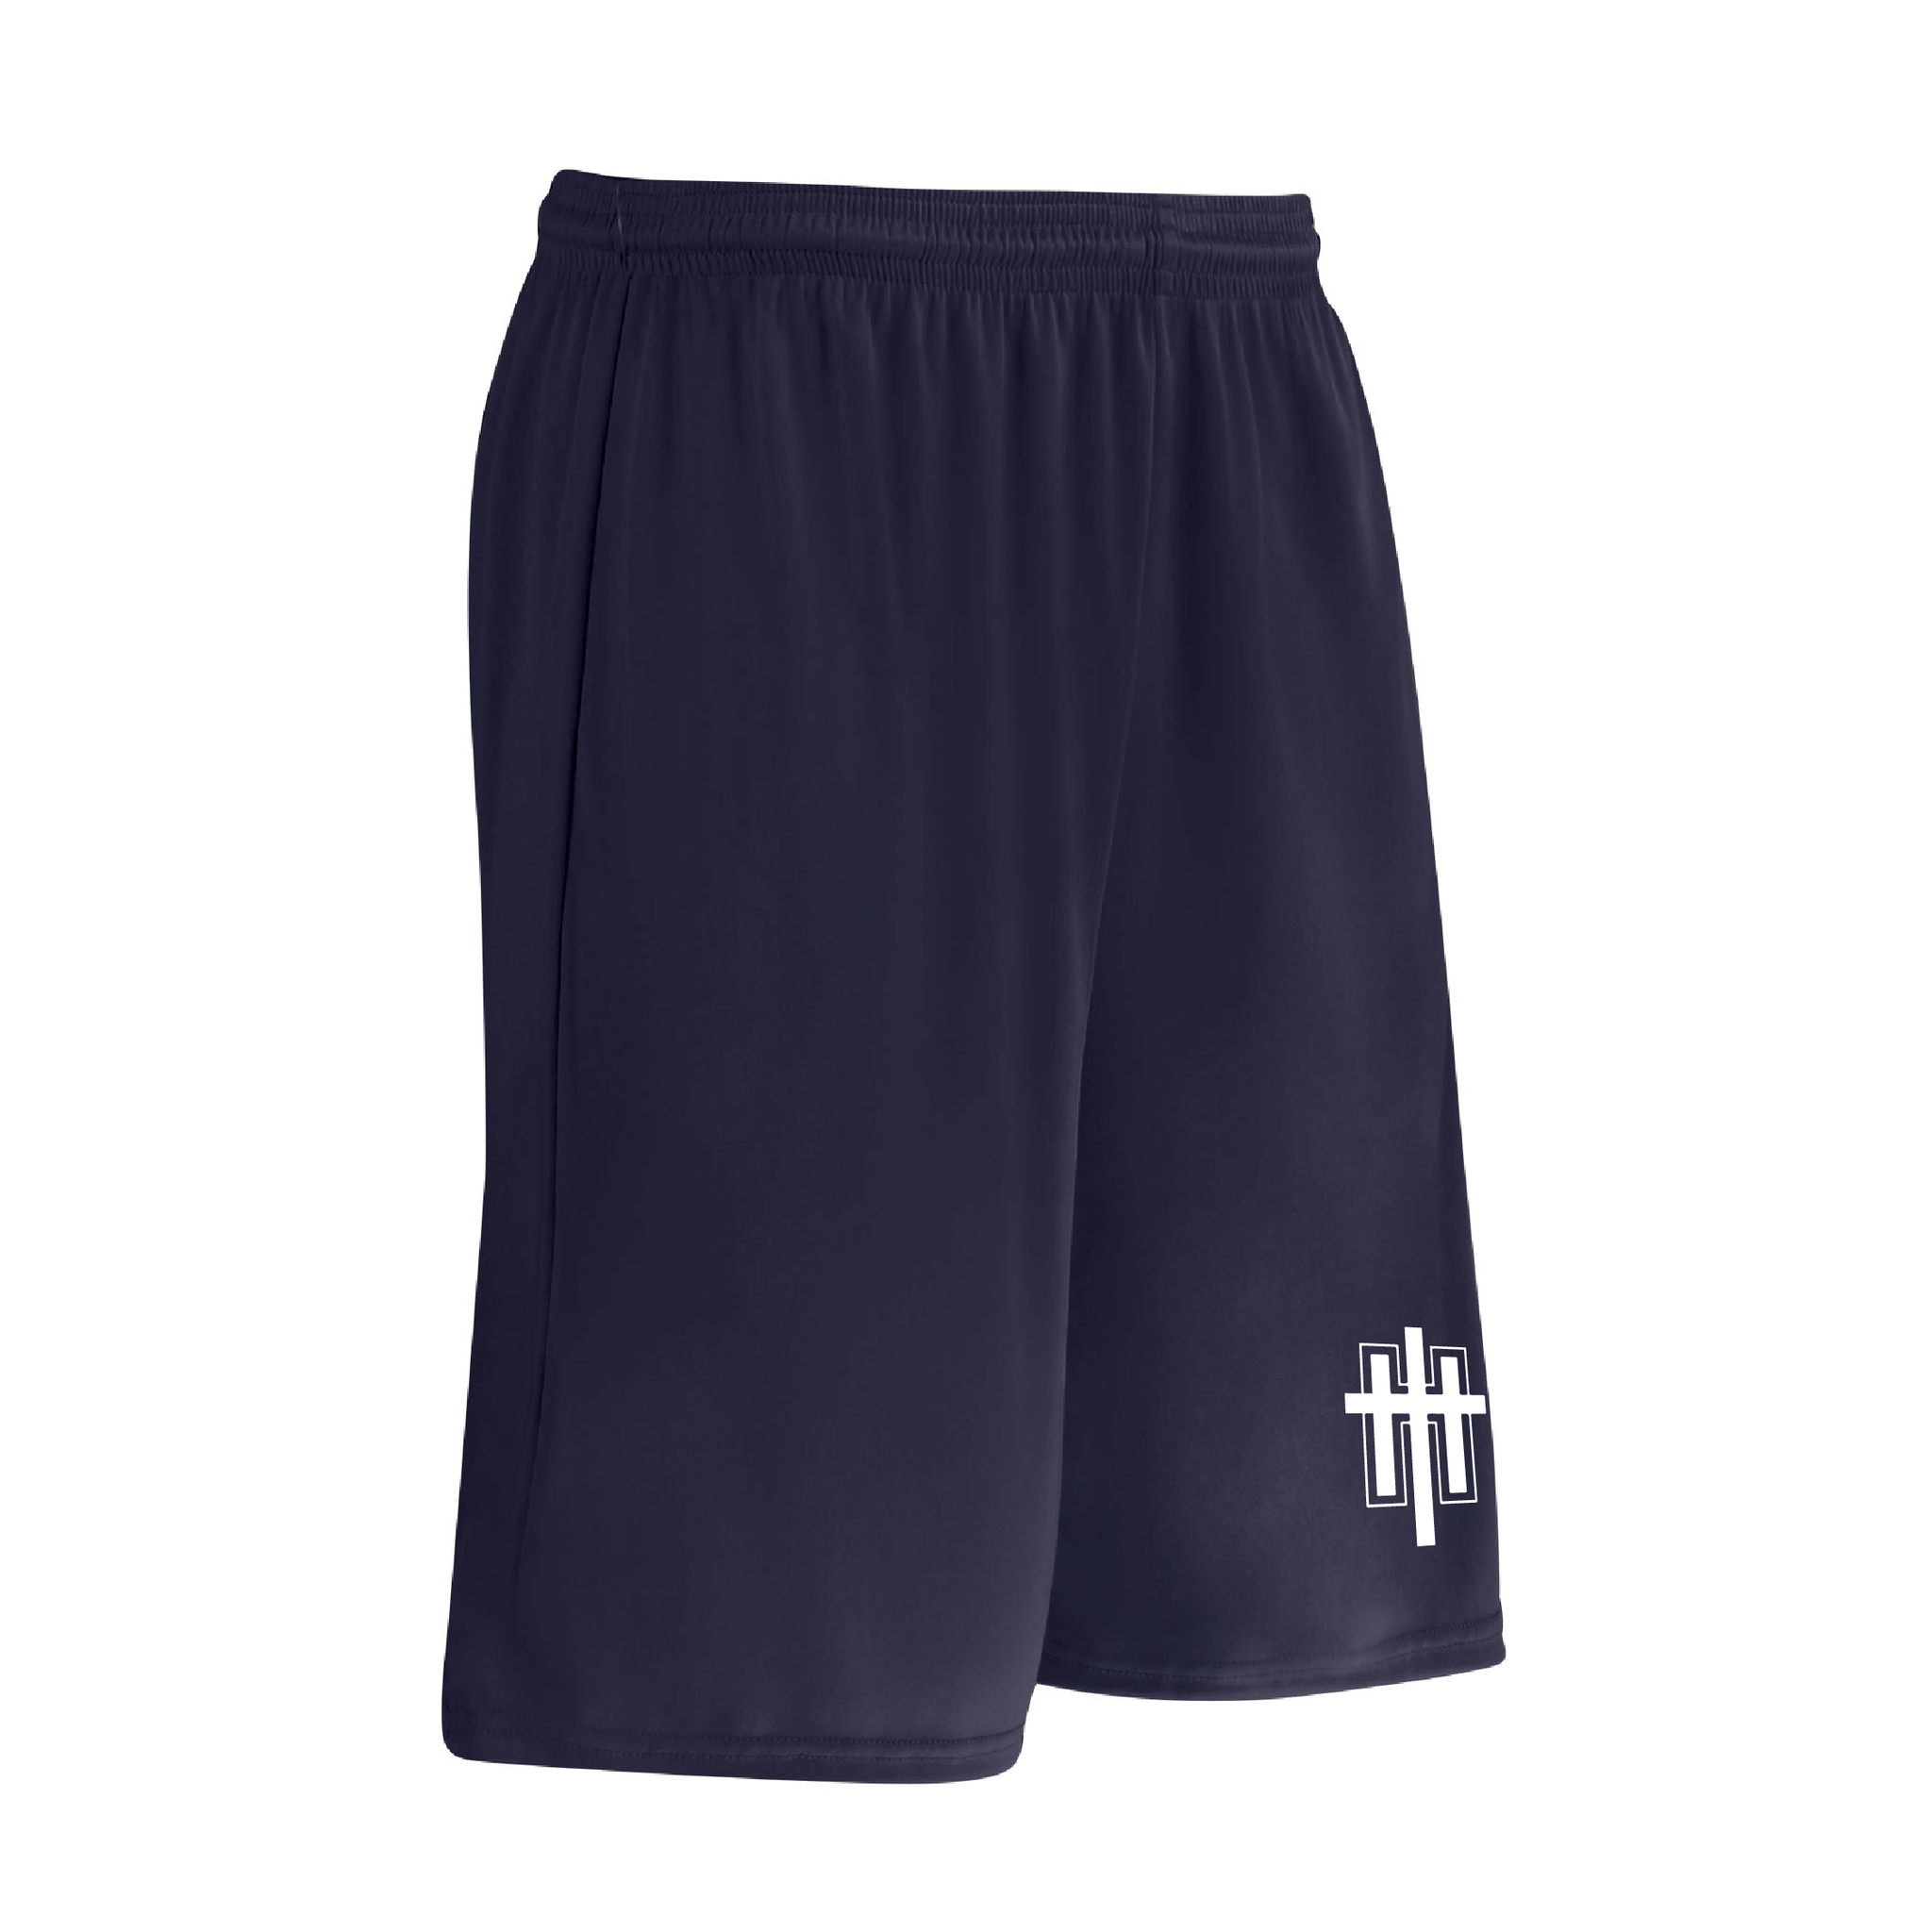 St. Helen Dri-Gear Shorts